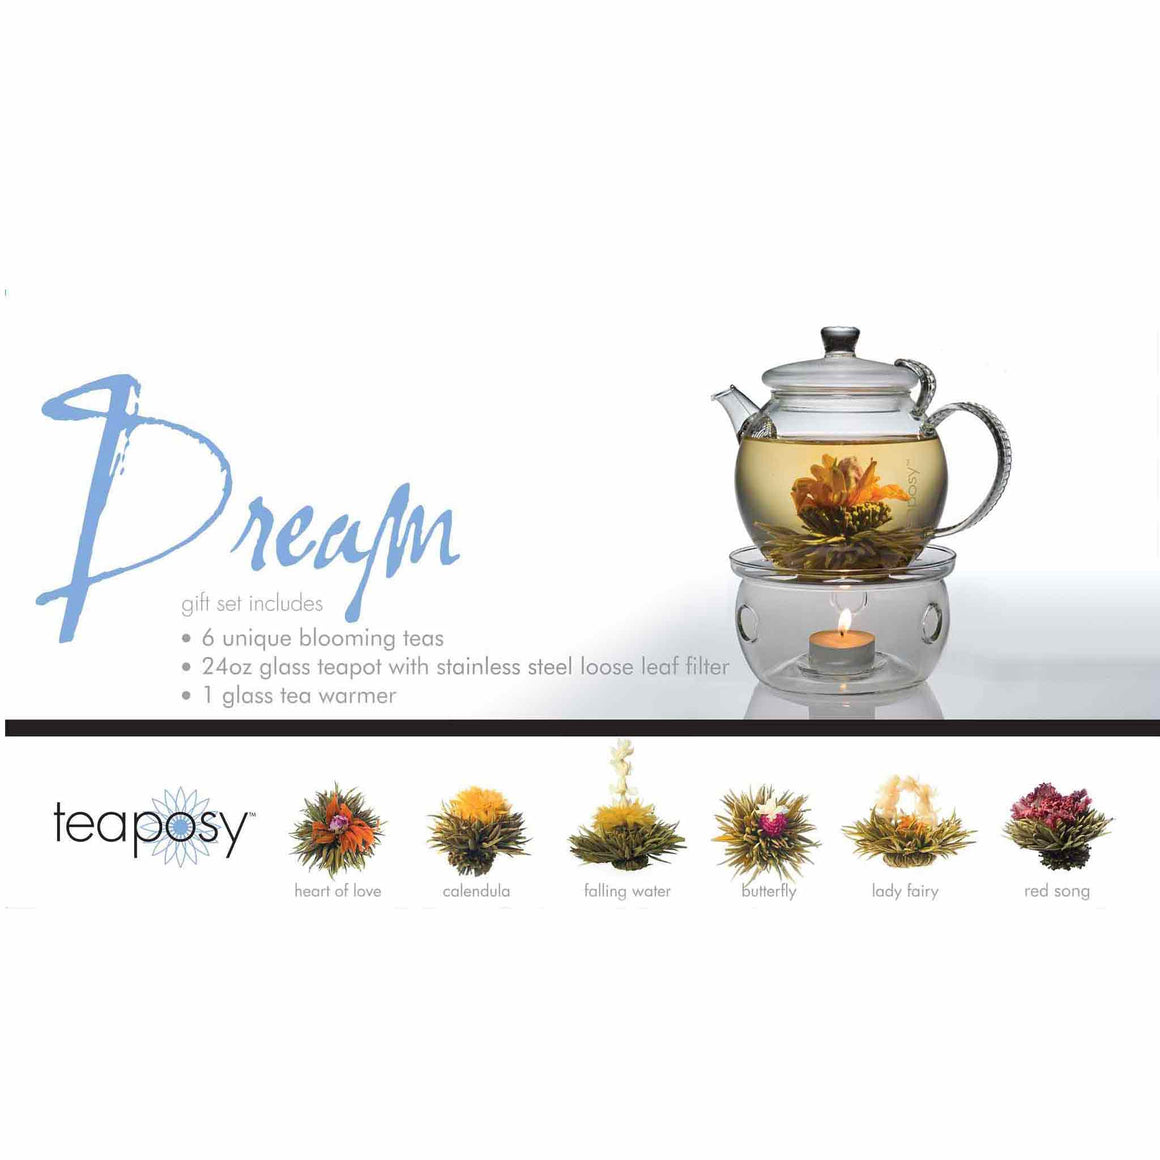 teaposy dream posy gift set with 6 unique blooming teas 24 oz daydream glass teapot and light my fire tea warmer